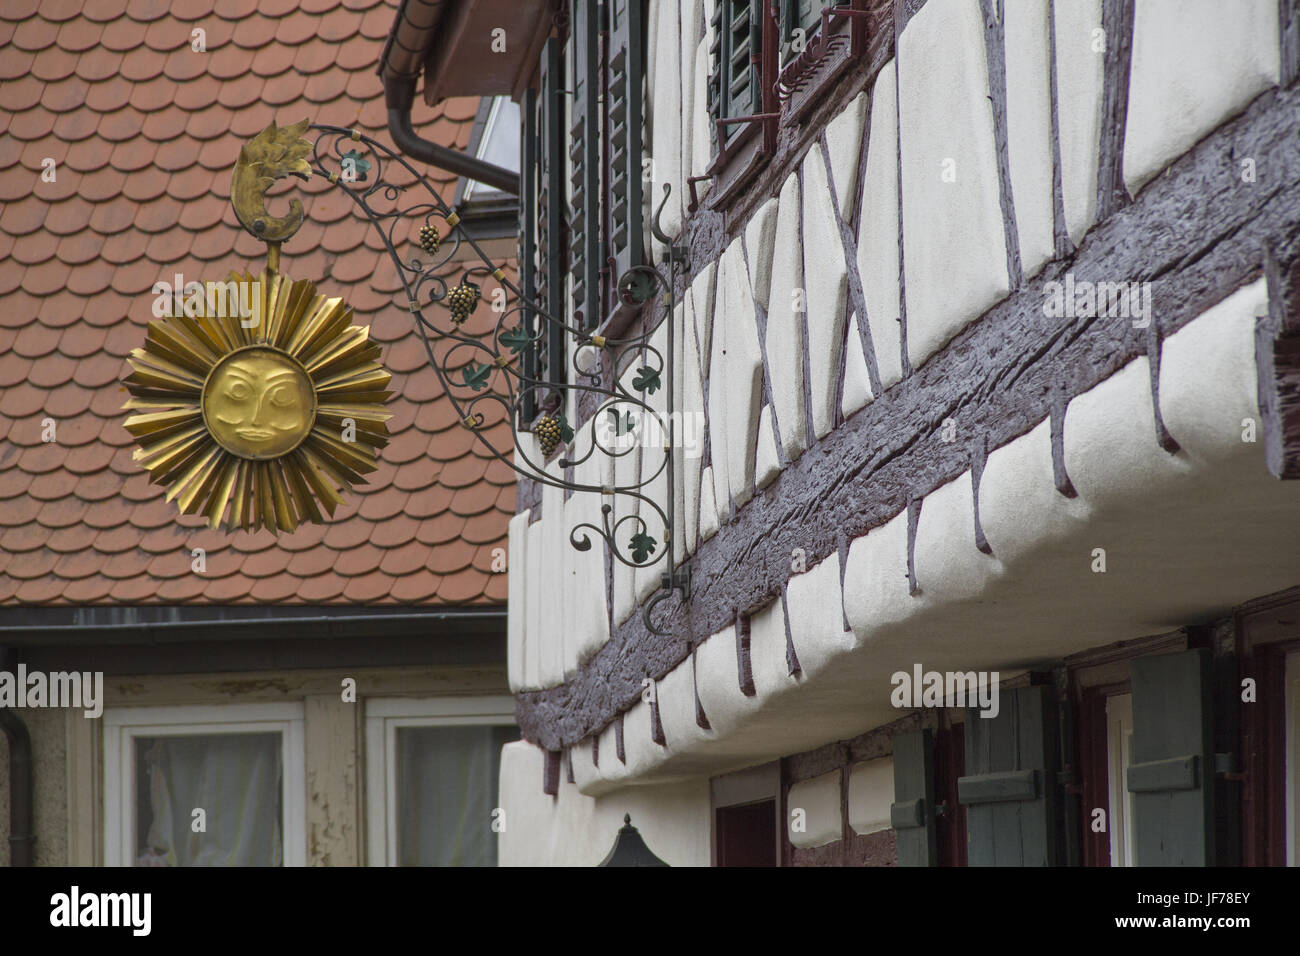 Half-Timbering house in Lauffen, Germany Stock Photo